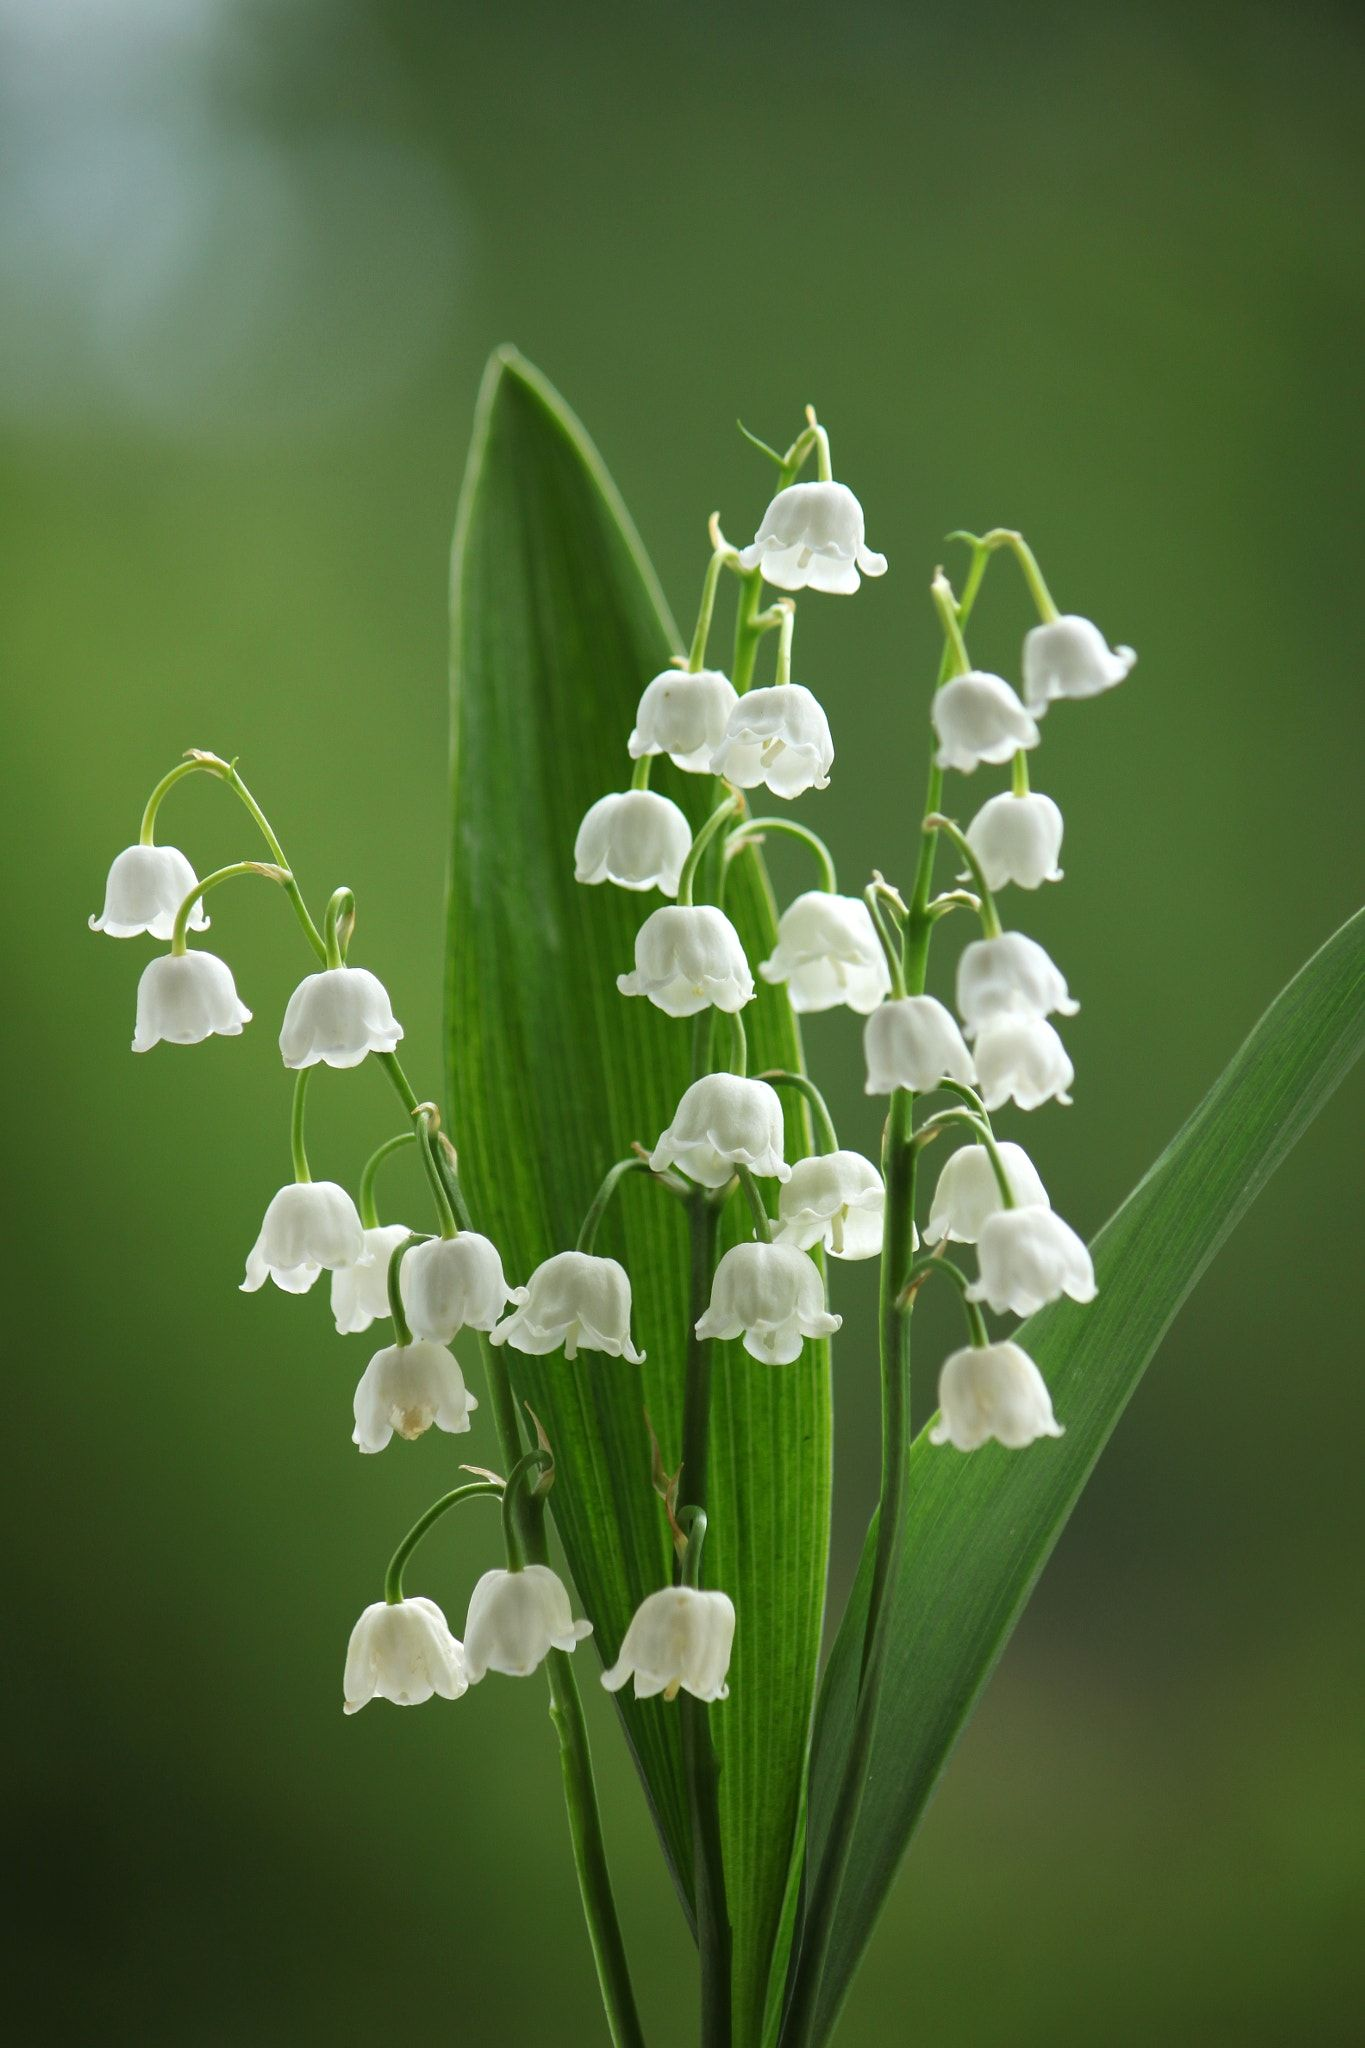 Lily Of The Valley Wild About Flowers Pinterest Lily Of The